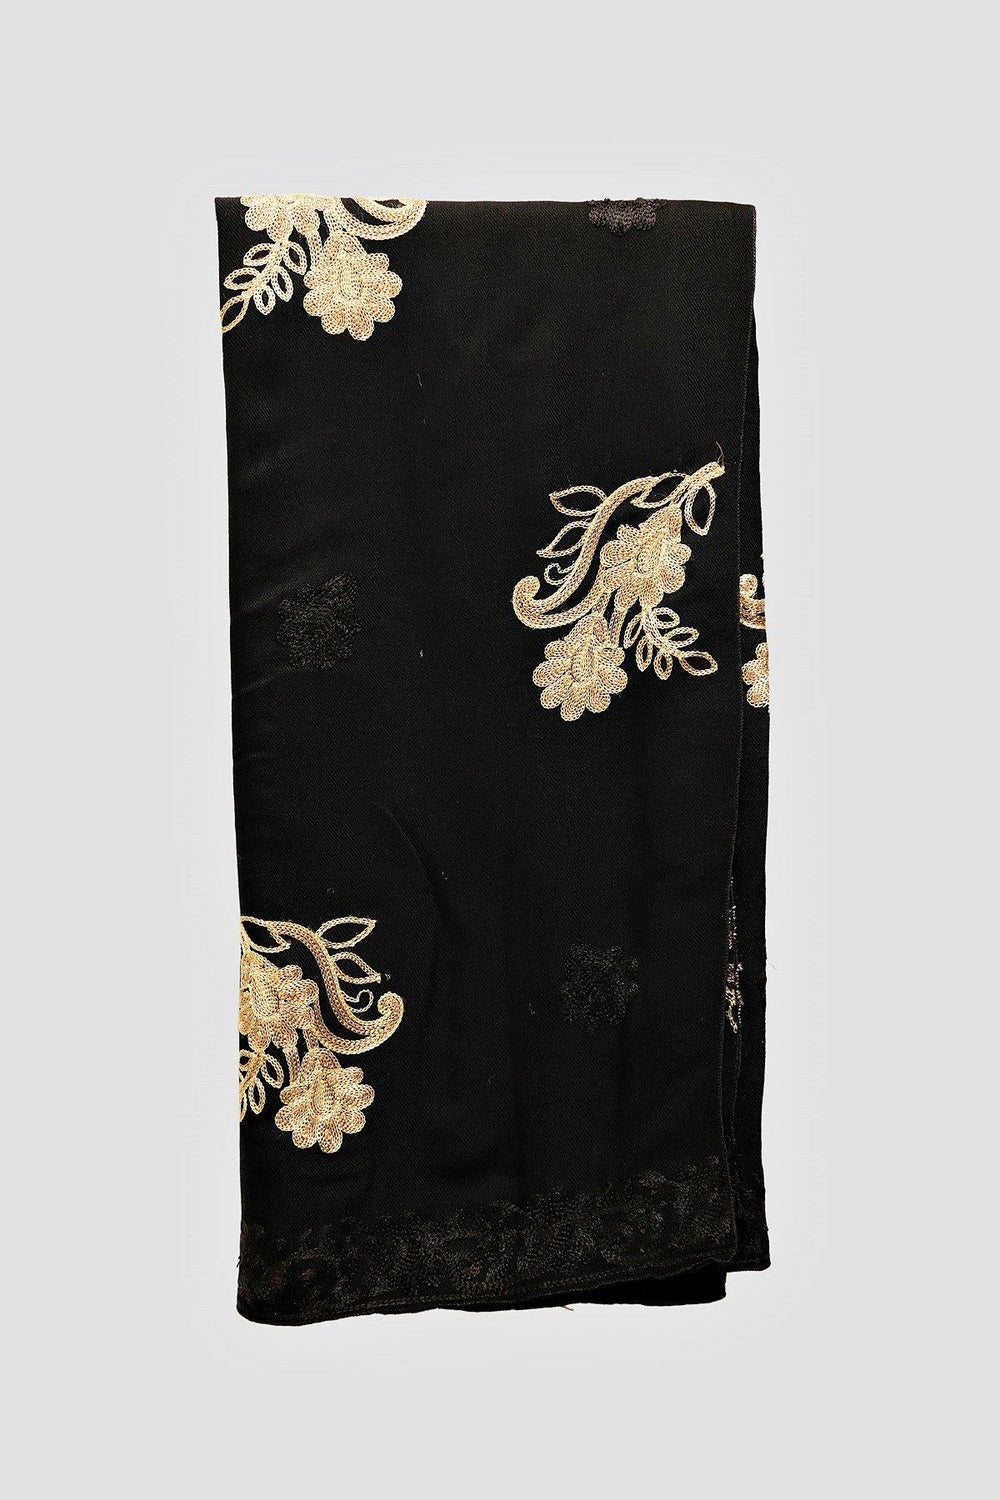 Golden Floral Embroidered Shawl